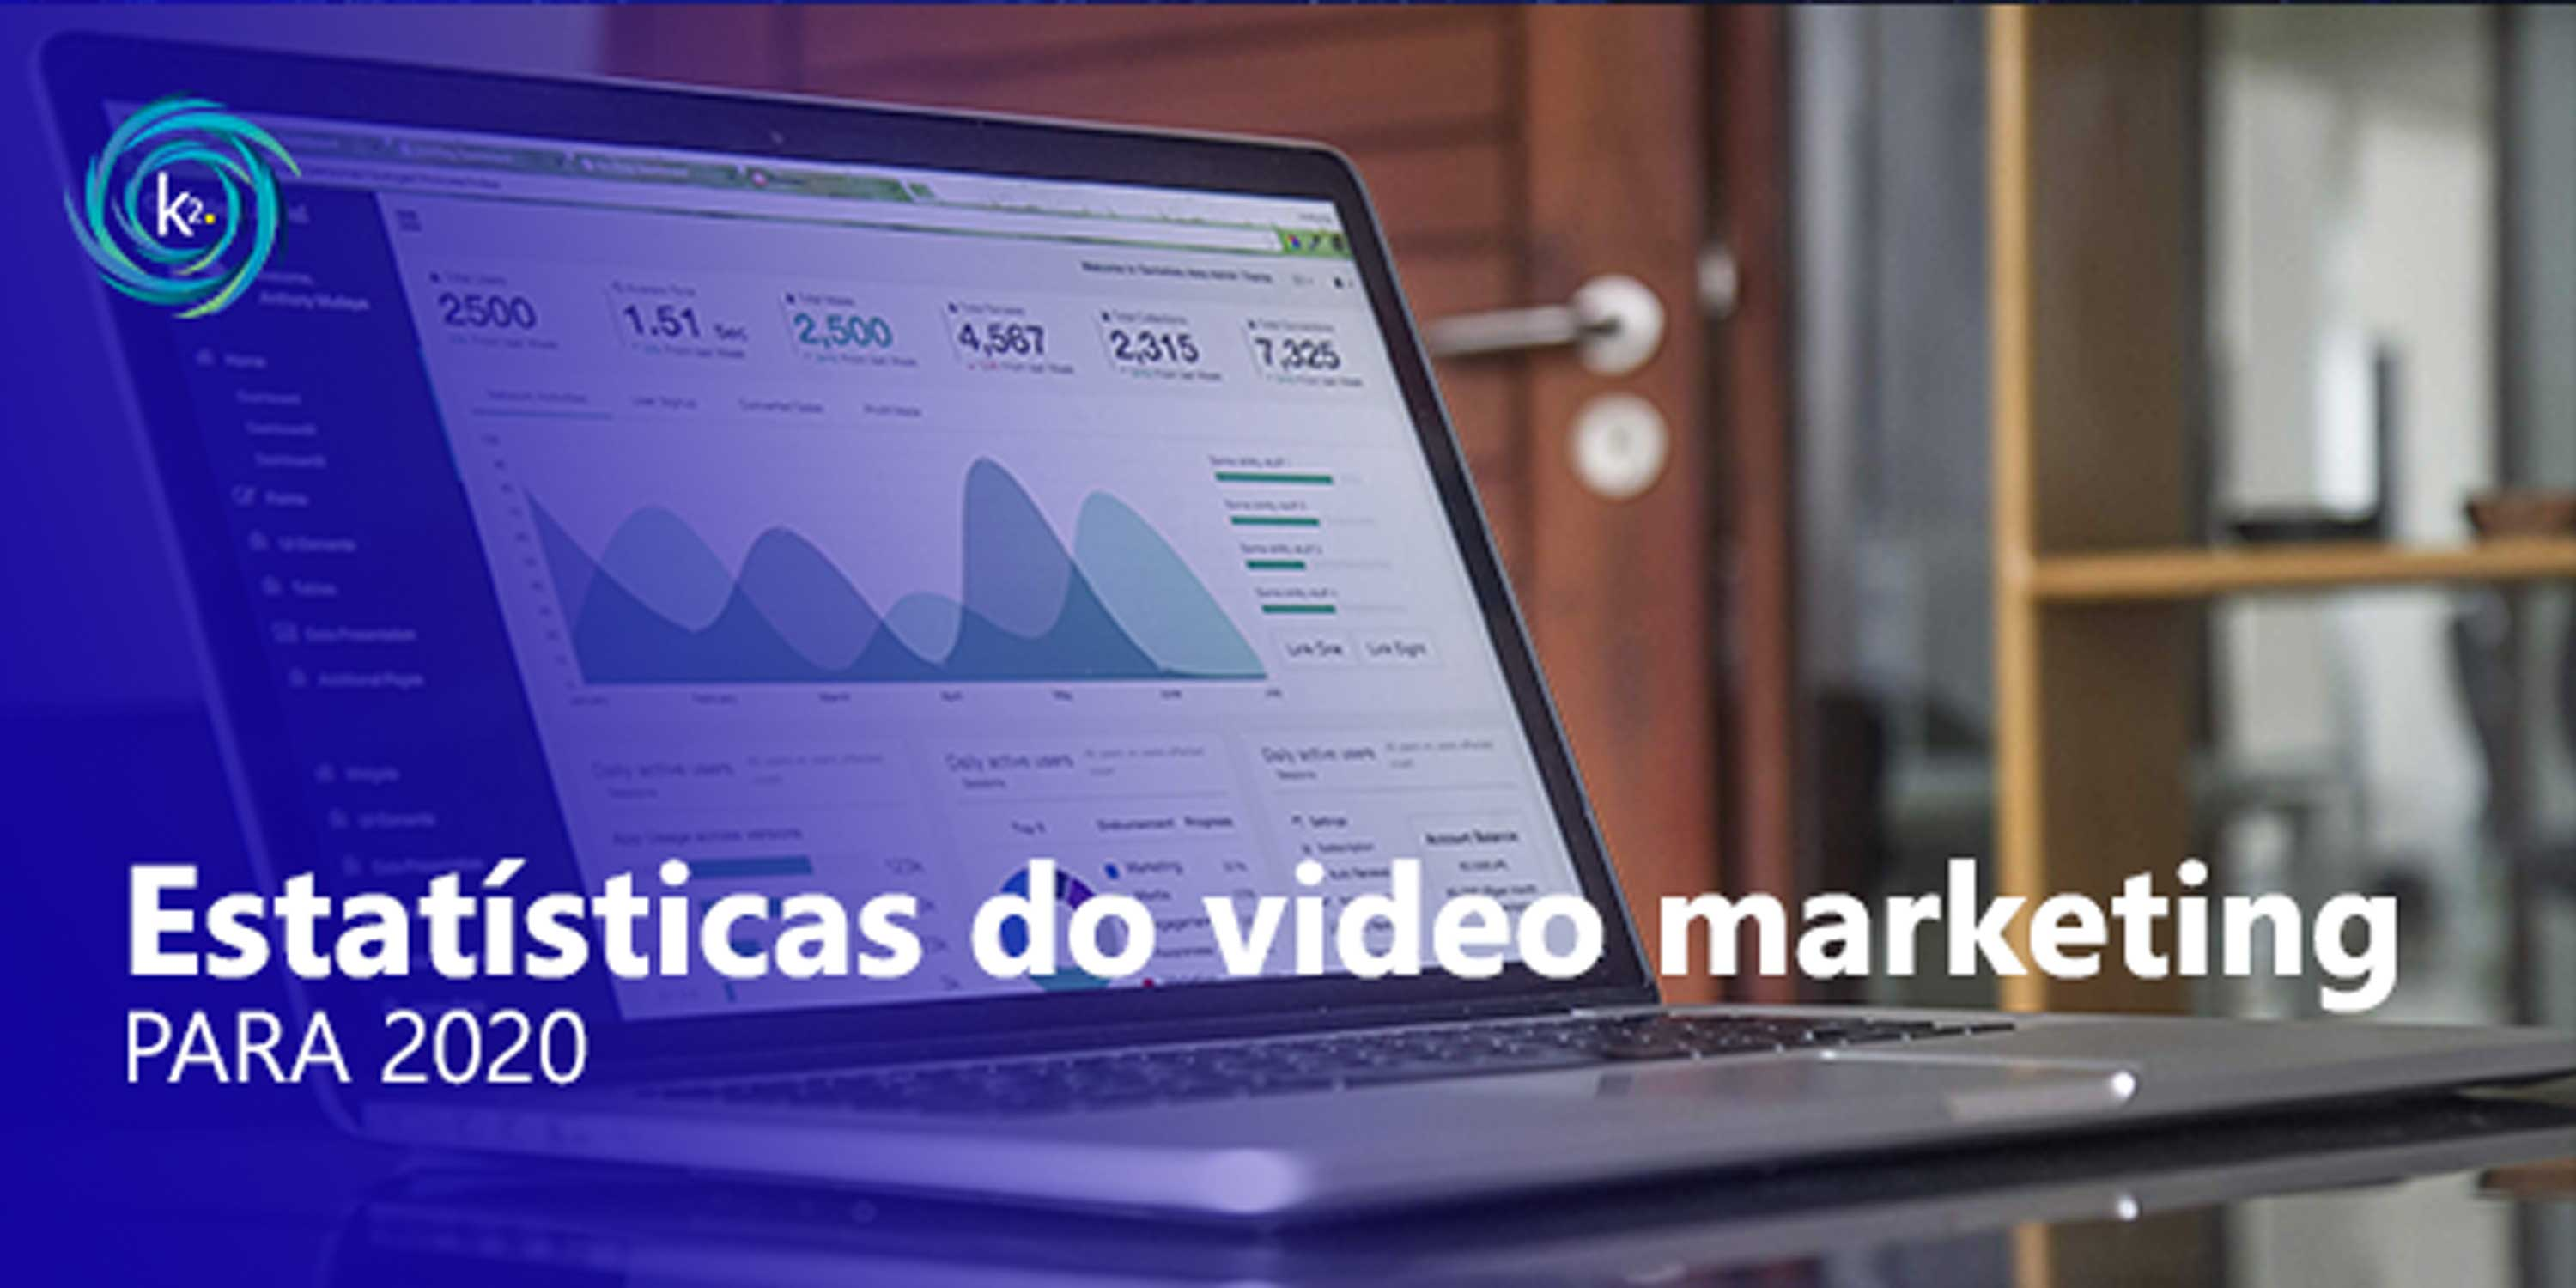 estatísticas do video marketing para 2020